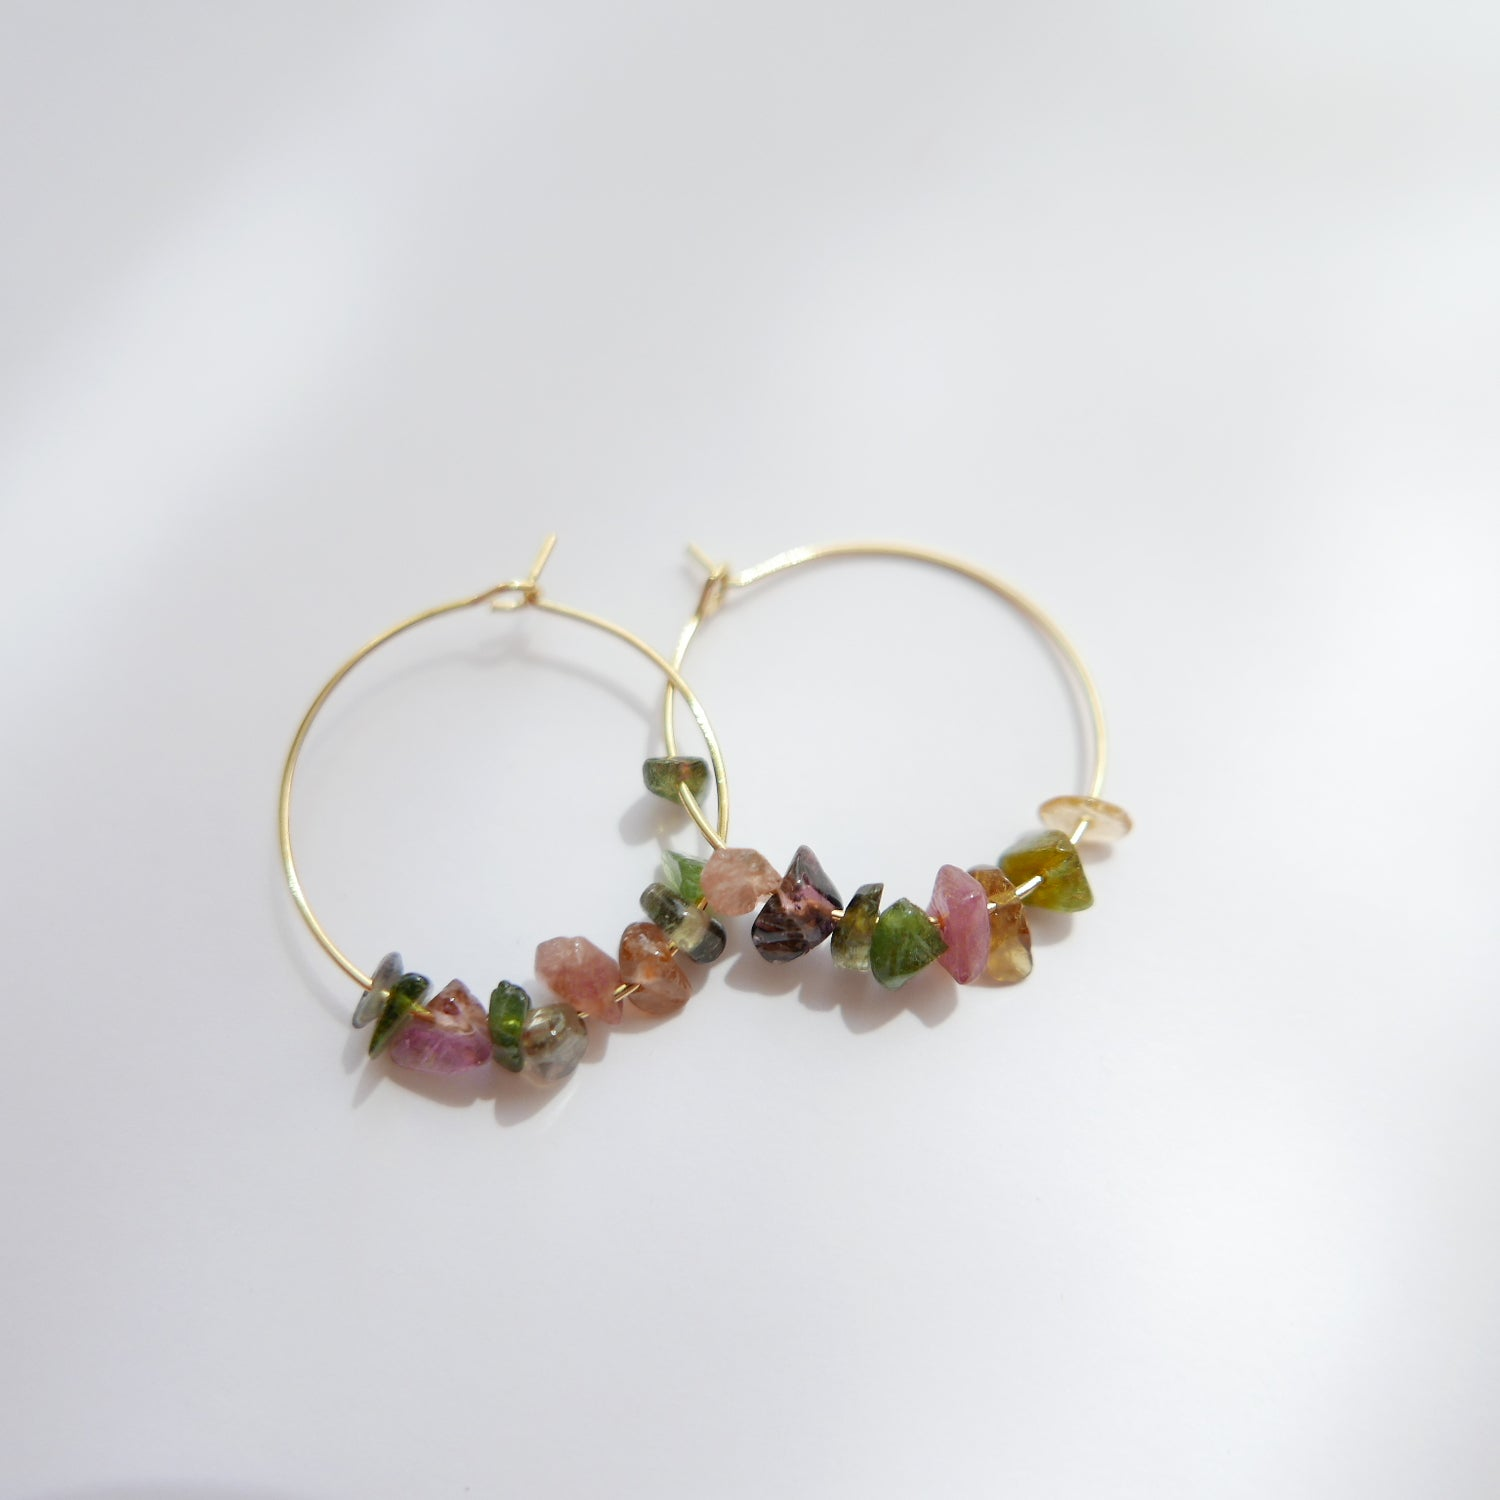 Image of Goodheart Hoops Gemstone - Tourmaline